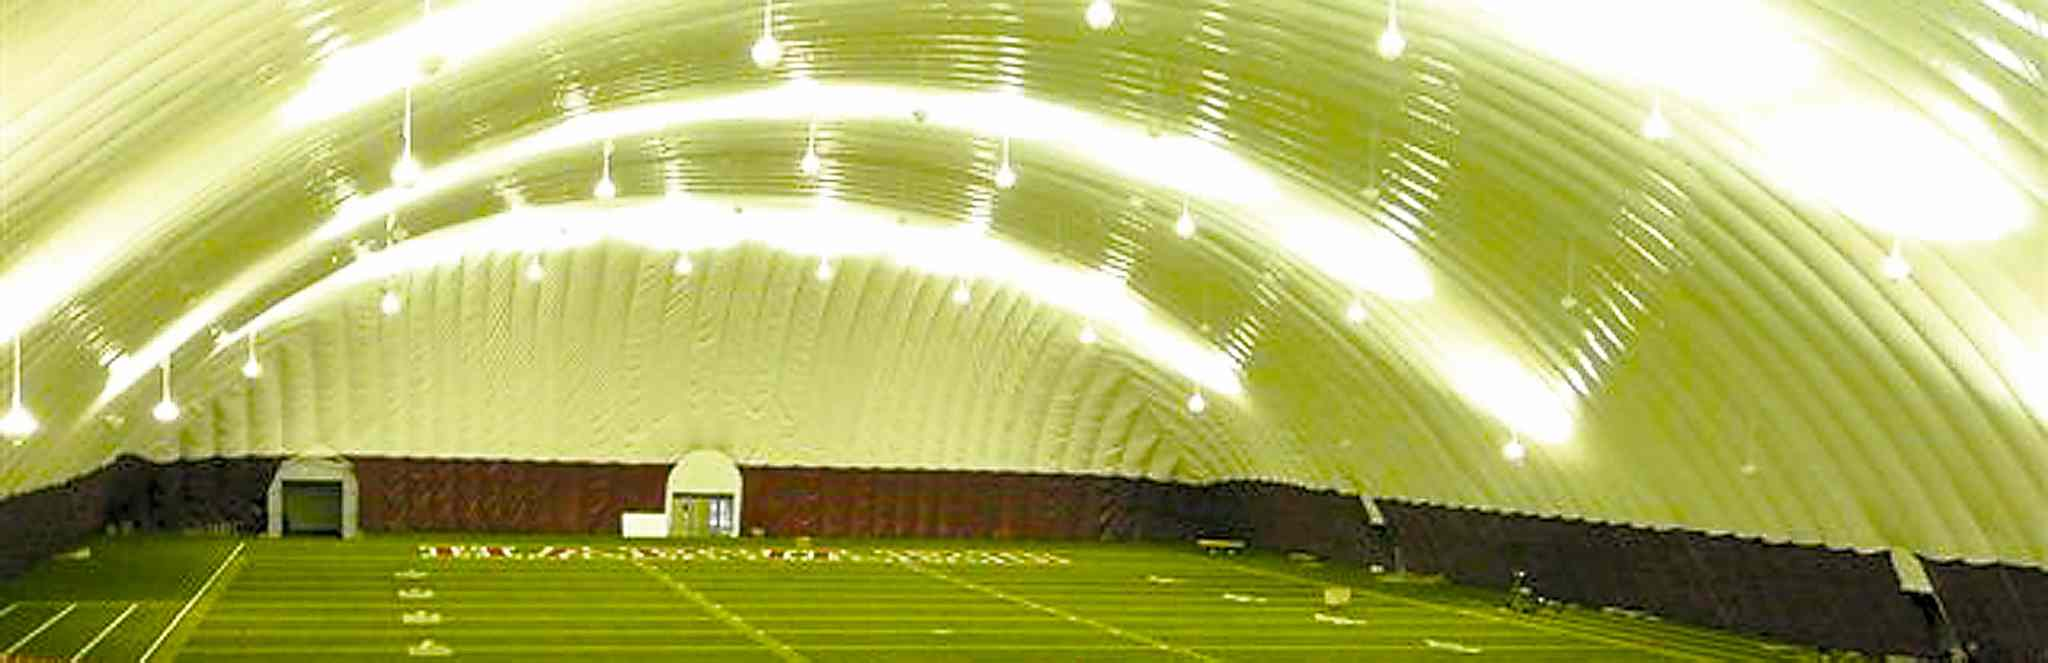 An image of an inflatable bubble. Investors Group Field will not be getting one.